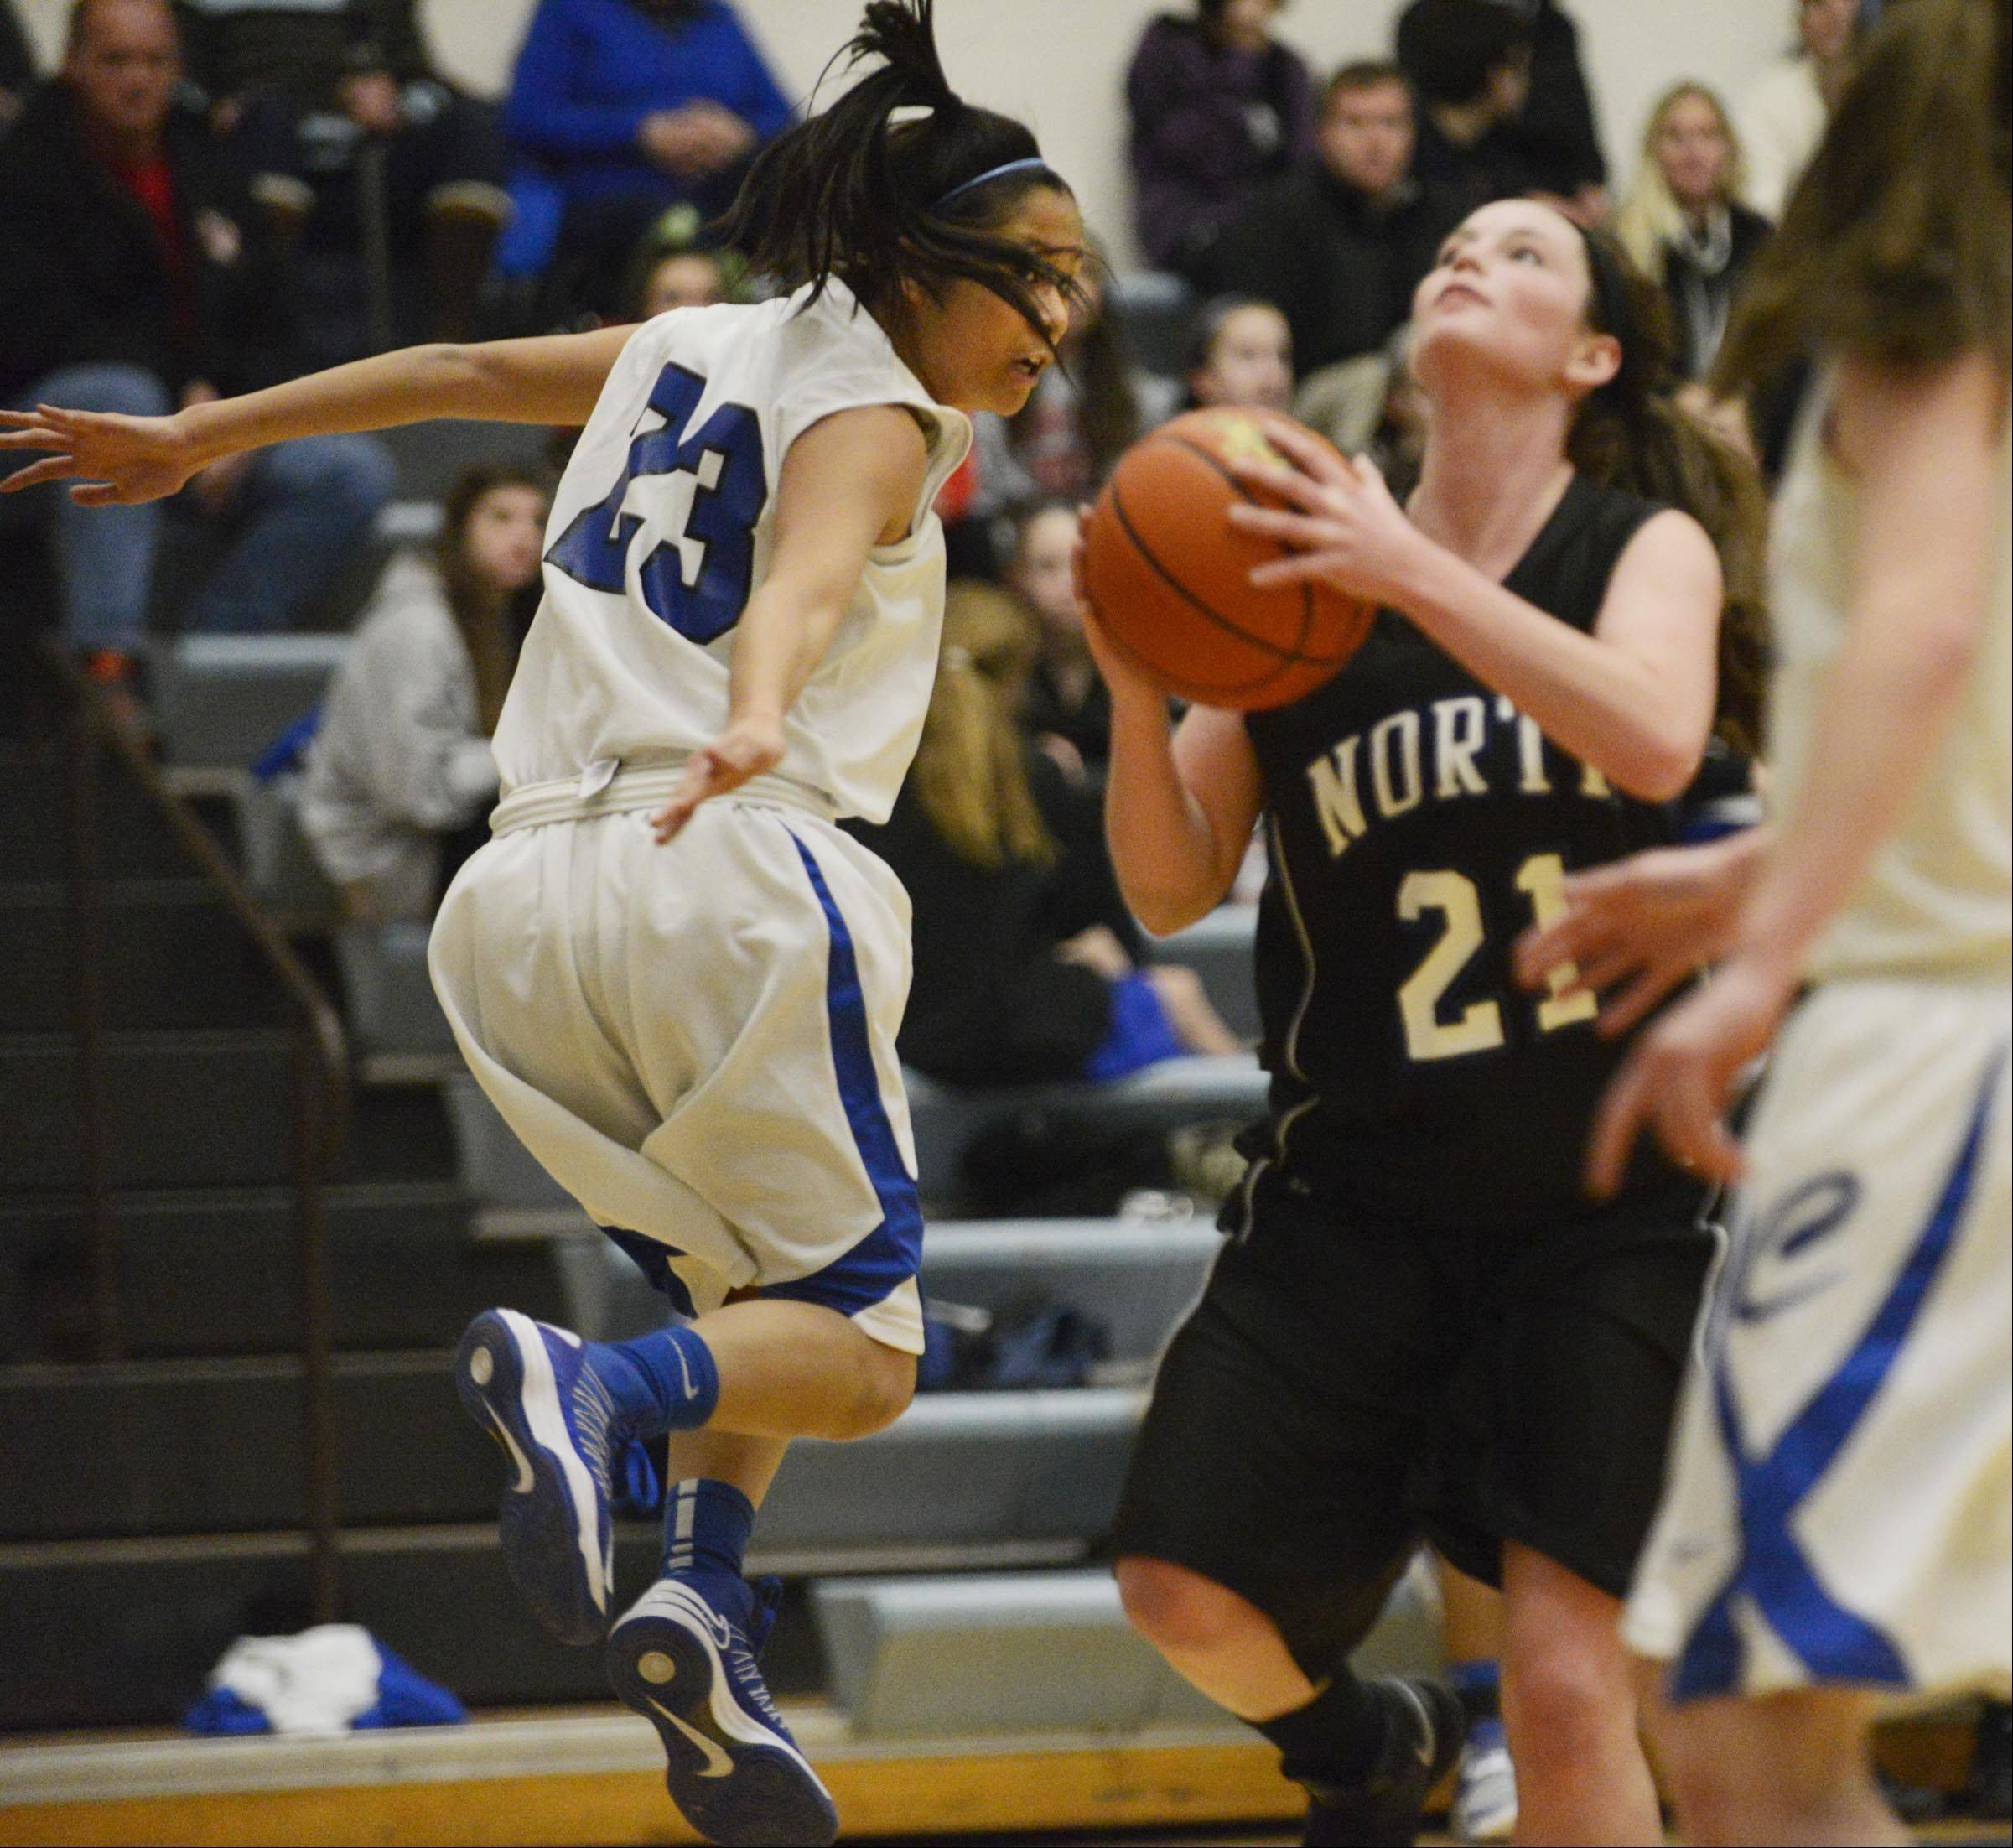 Burlington Central's Camille Delacruz flies past St. Charles North's Alex Silverman Tuesday in Burlington.